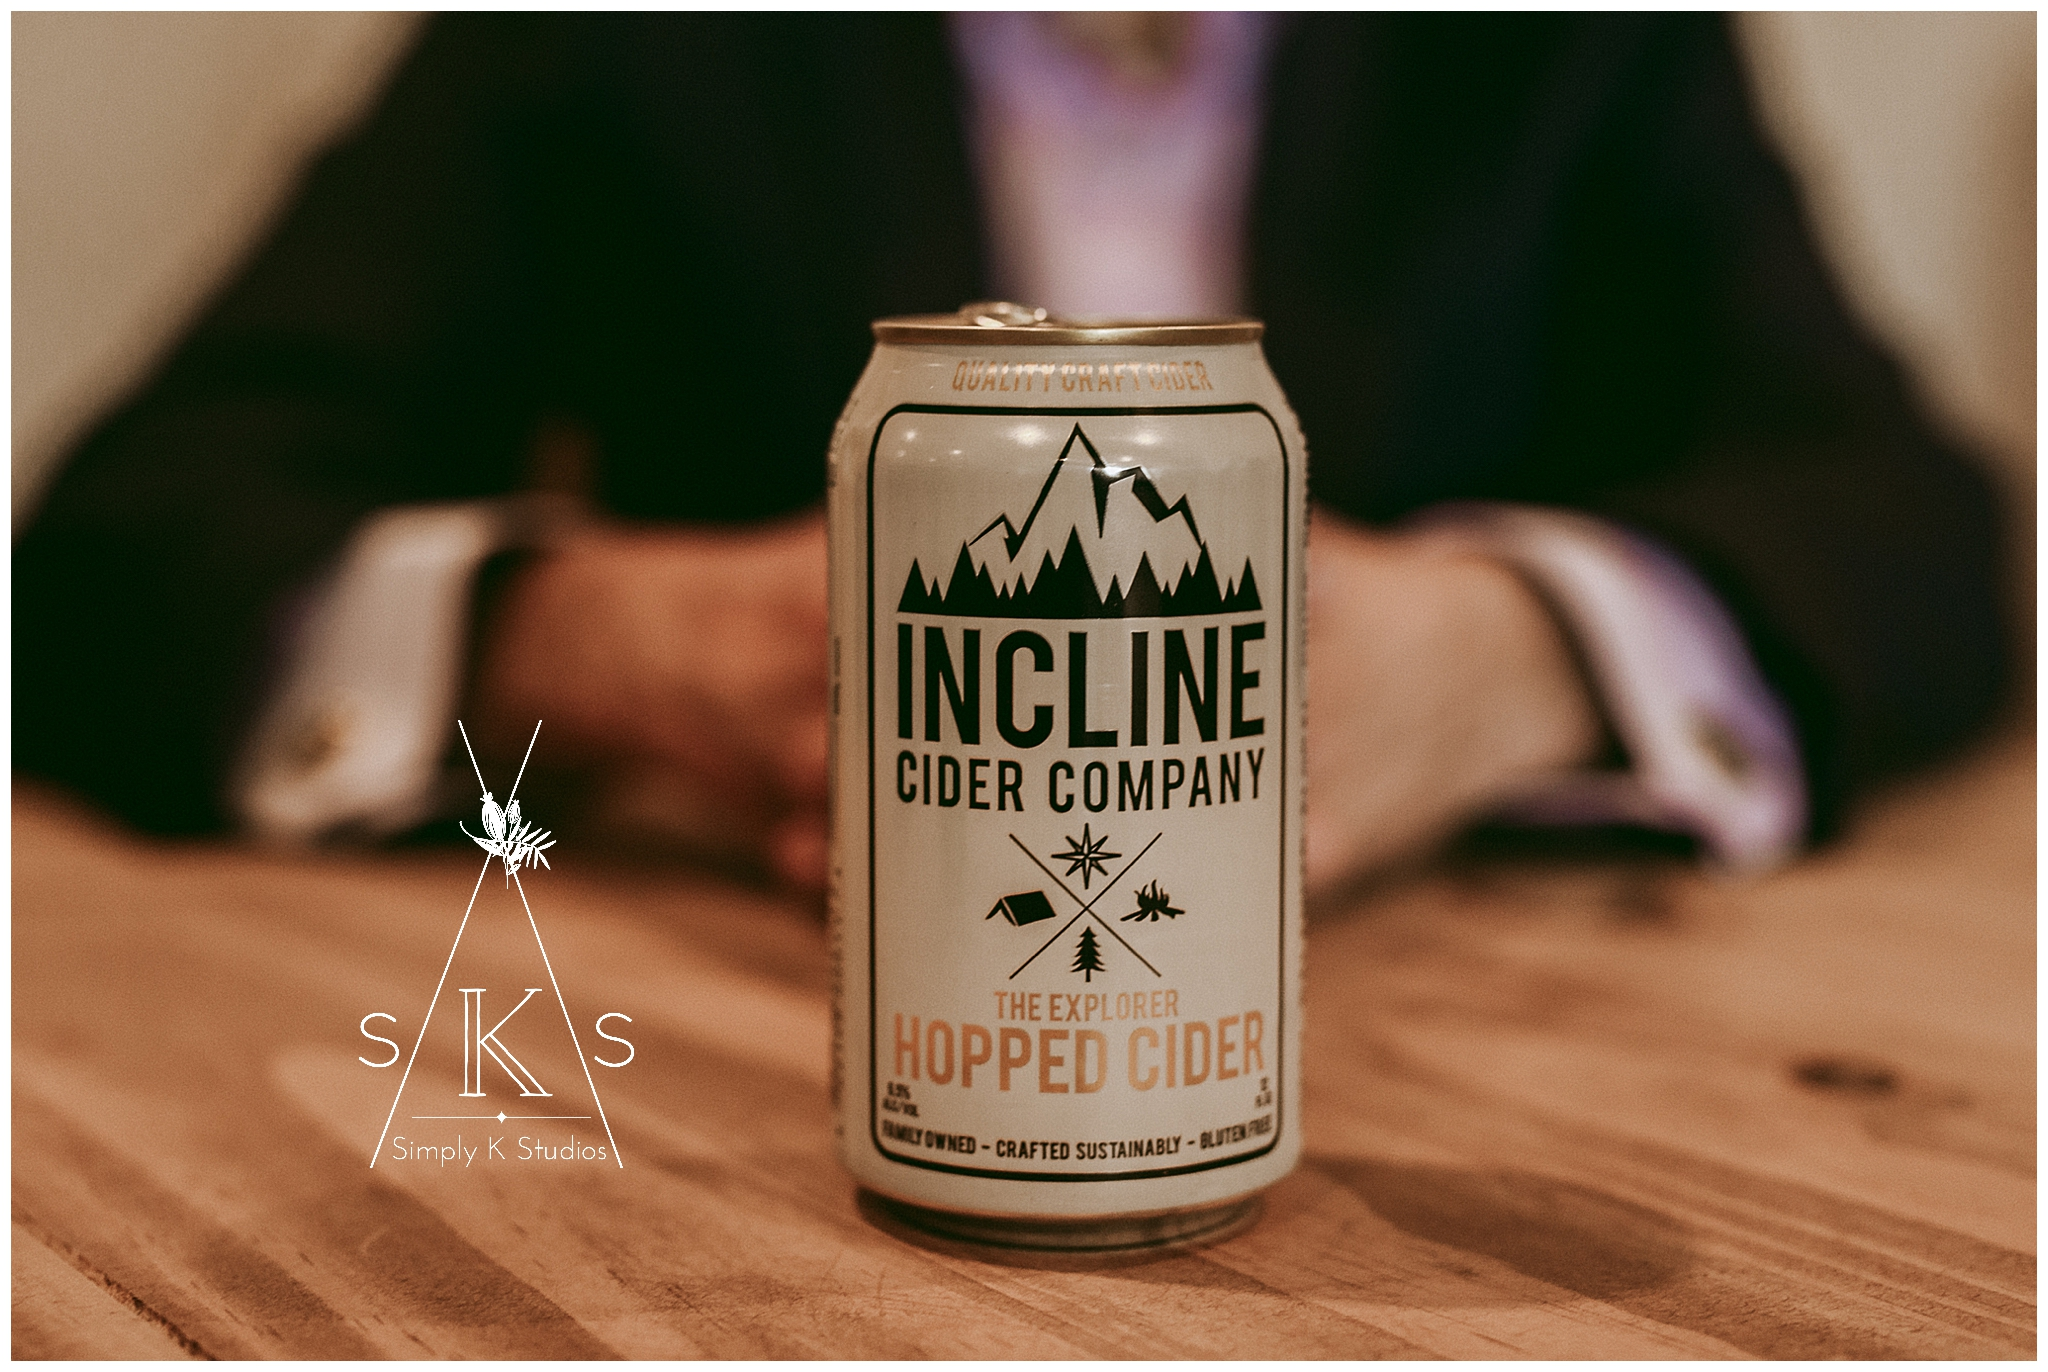 20 Incline Cider Company.jpg